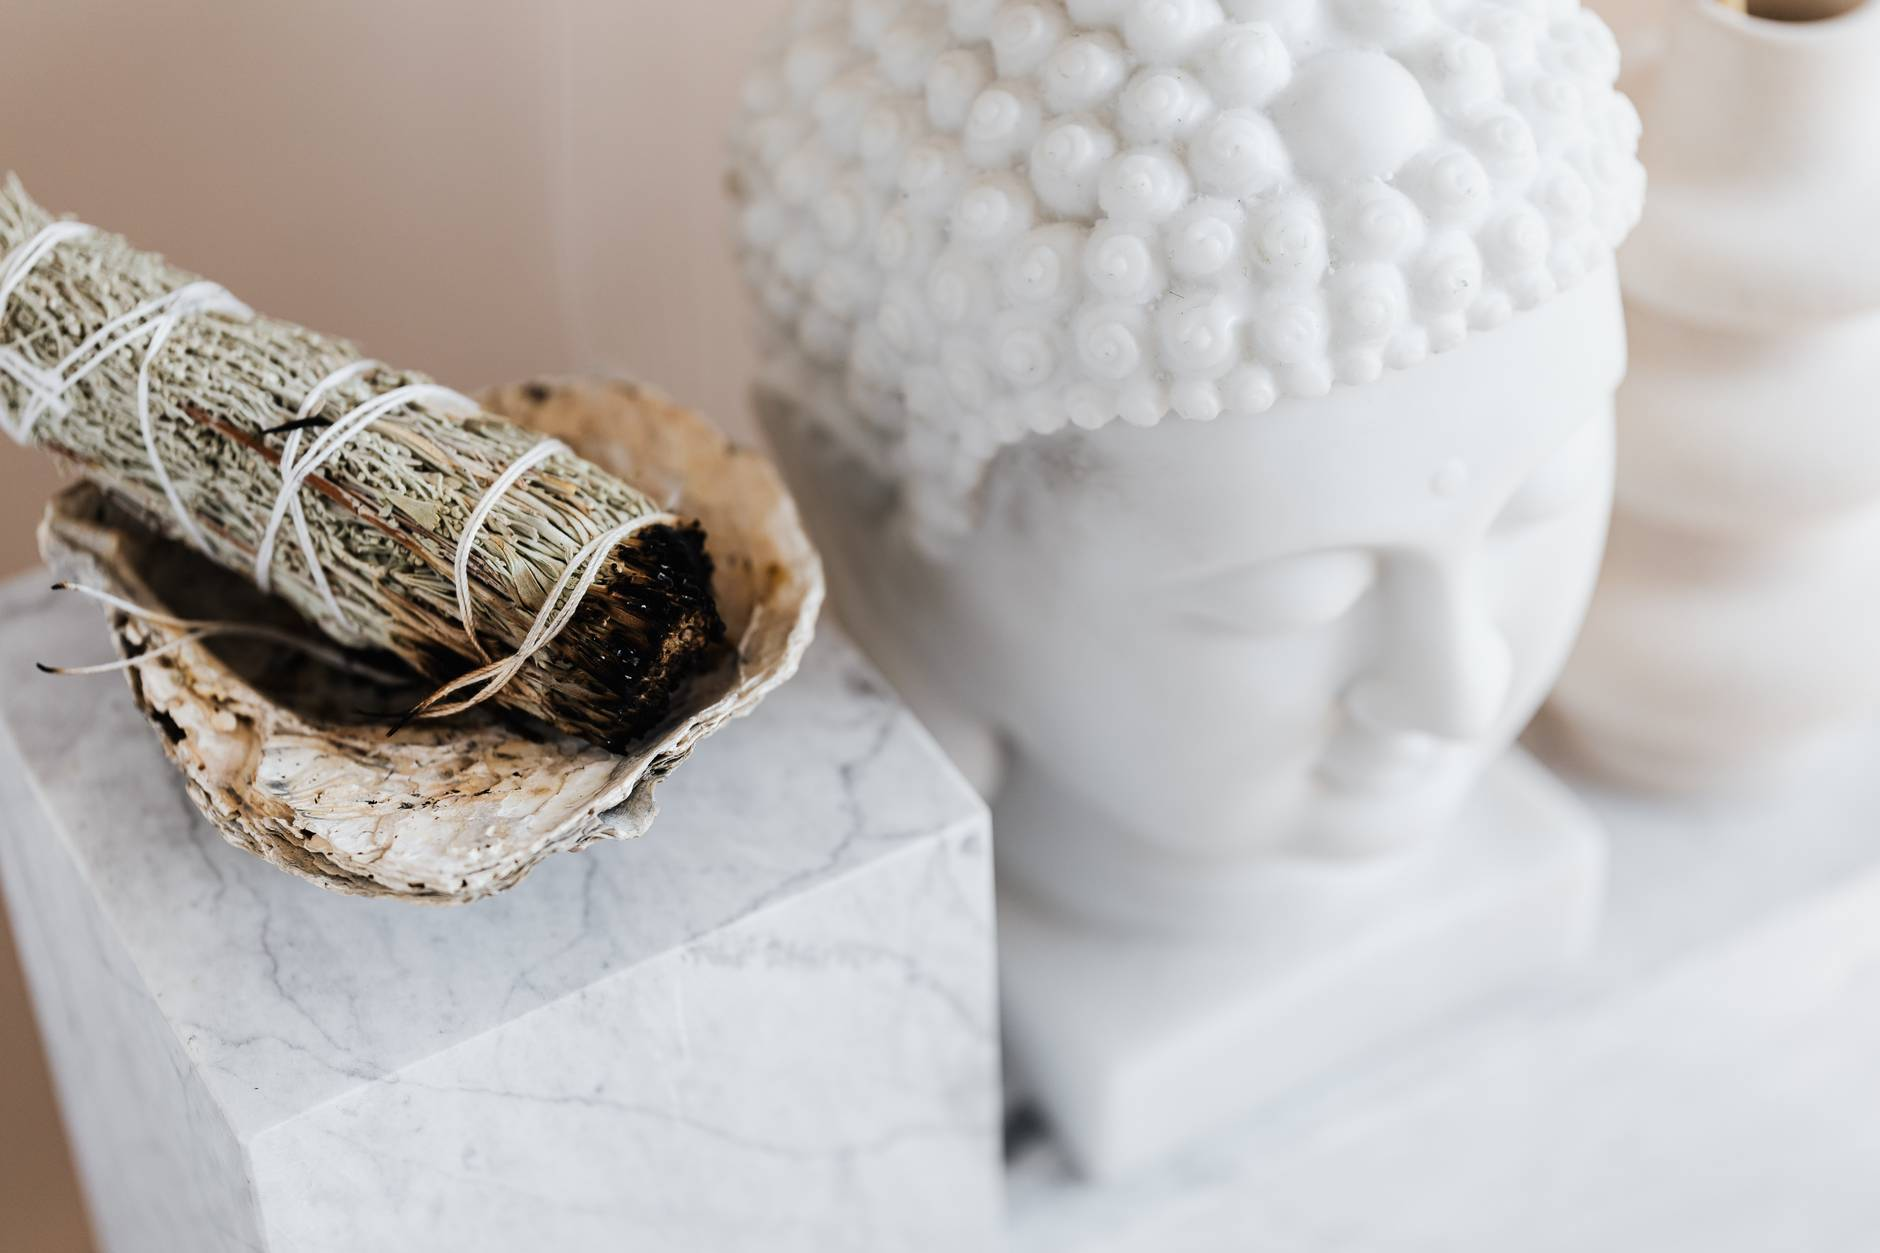 sage smudge stick in bowl on marble shelf near buddha head